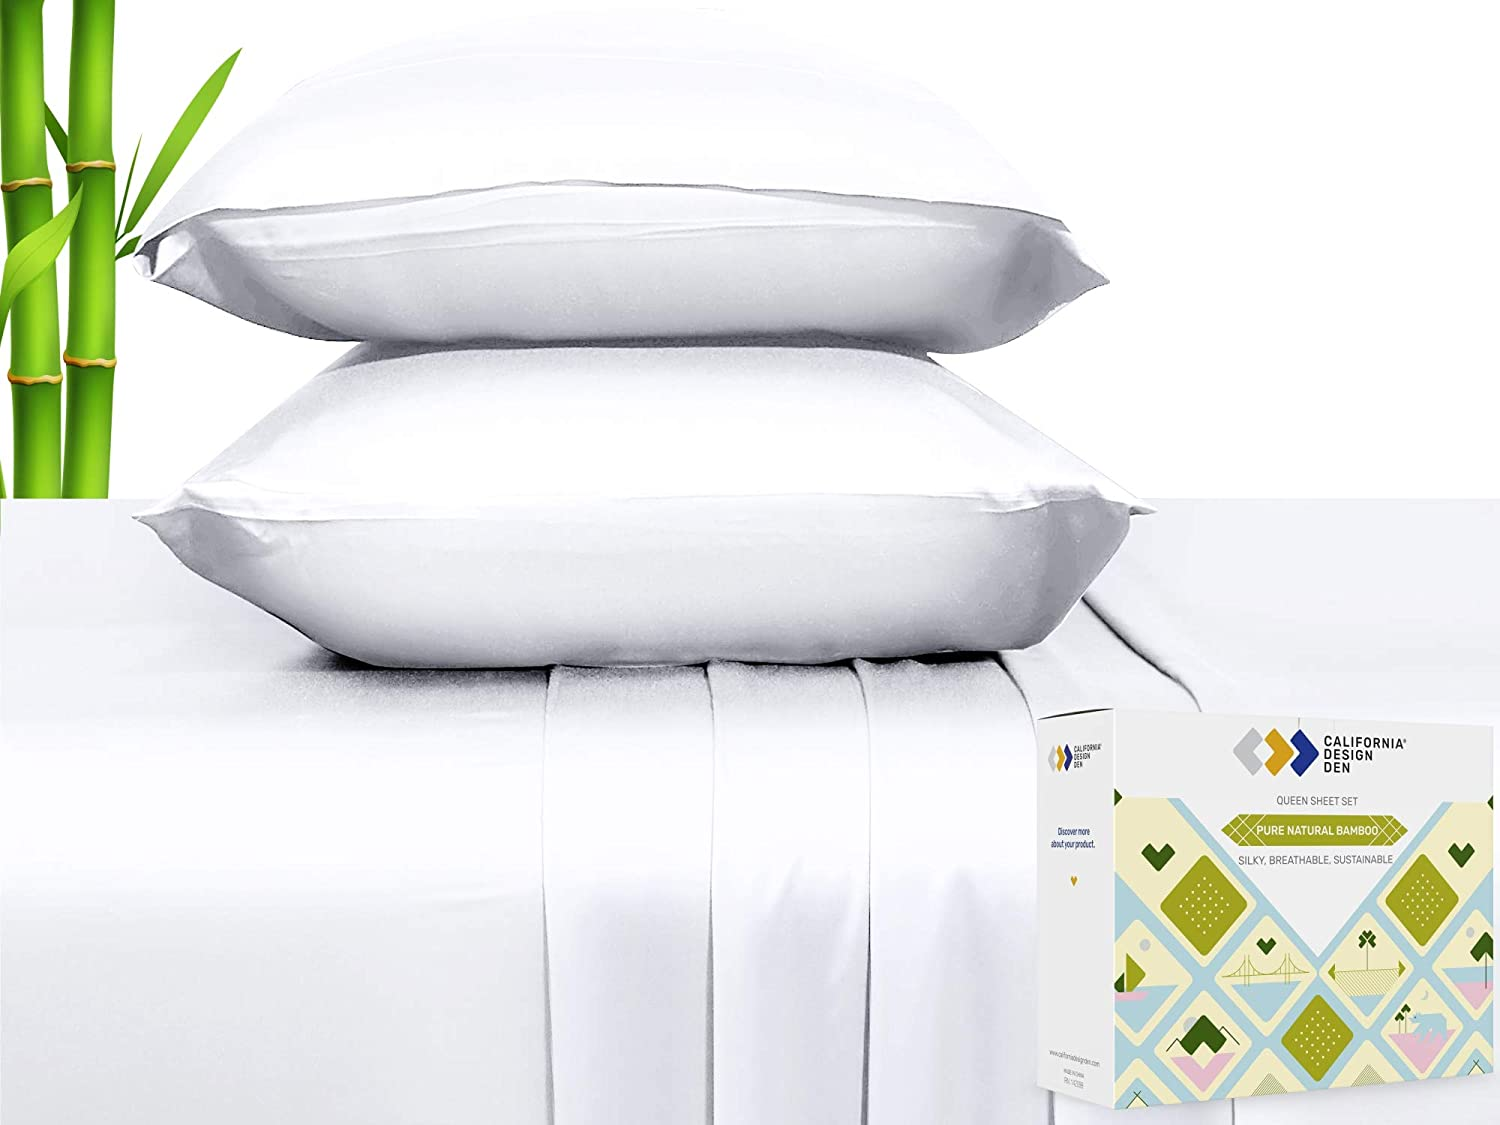 100% Natural Bamboo Sheets - Silky Soft Touch,Cool and Breathable, 4 Piece Hotel Luxury Sheet Set, Elasticized Deep Pocket for Snug Fit (Queen Size, Bright White)